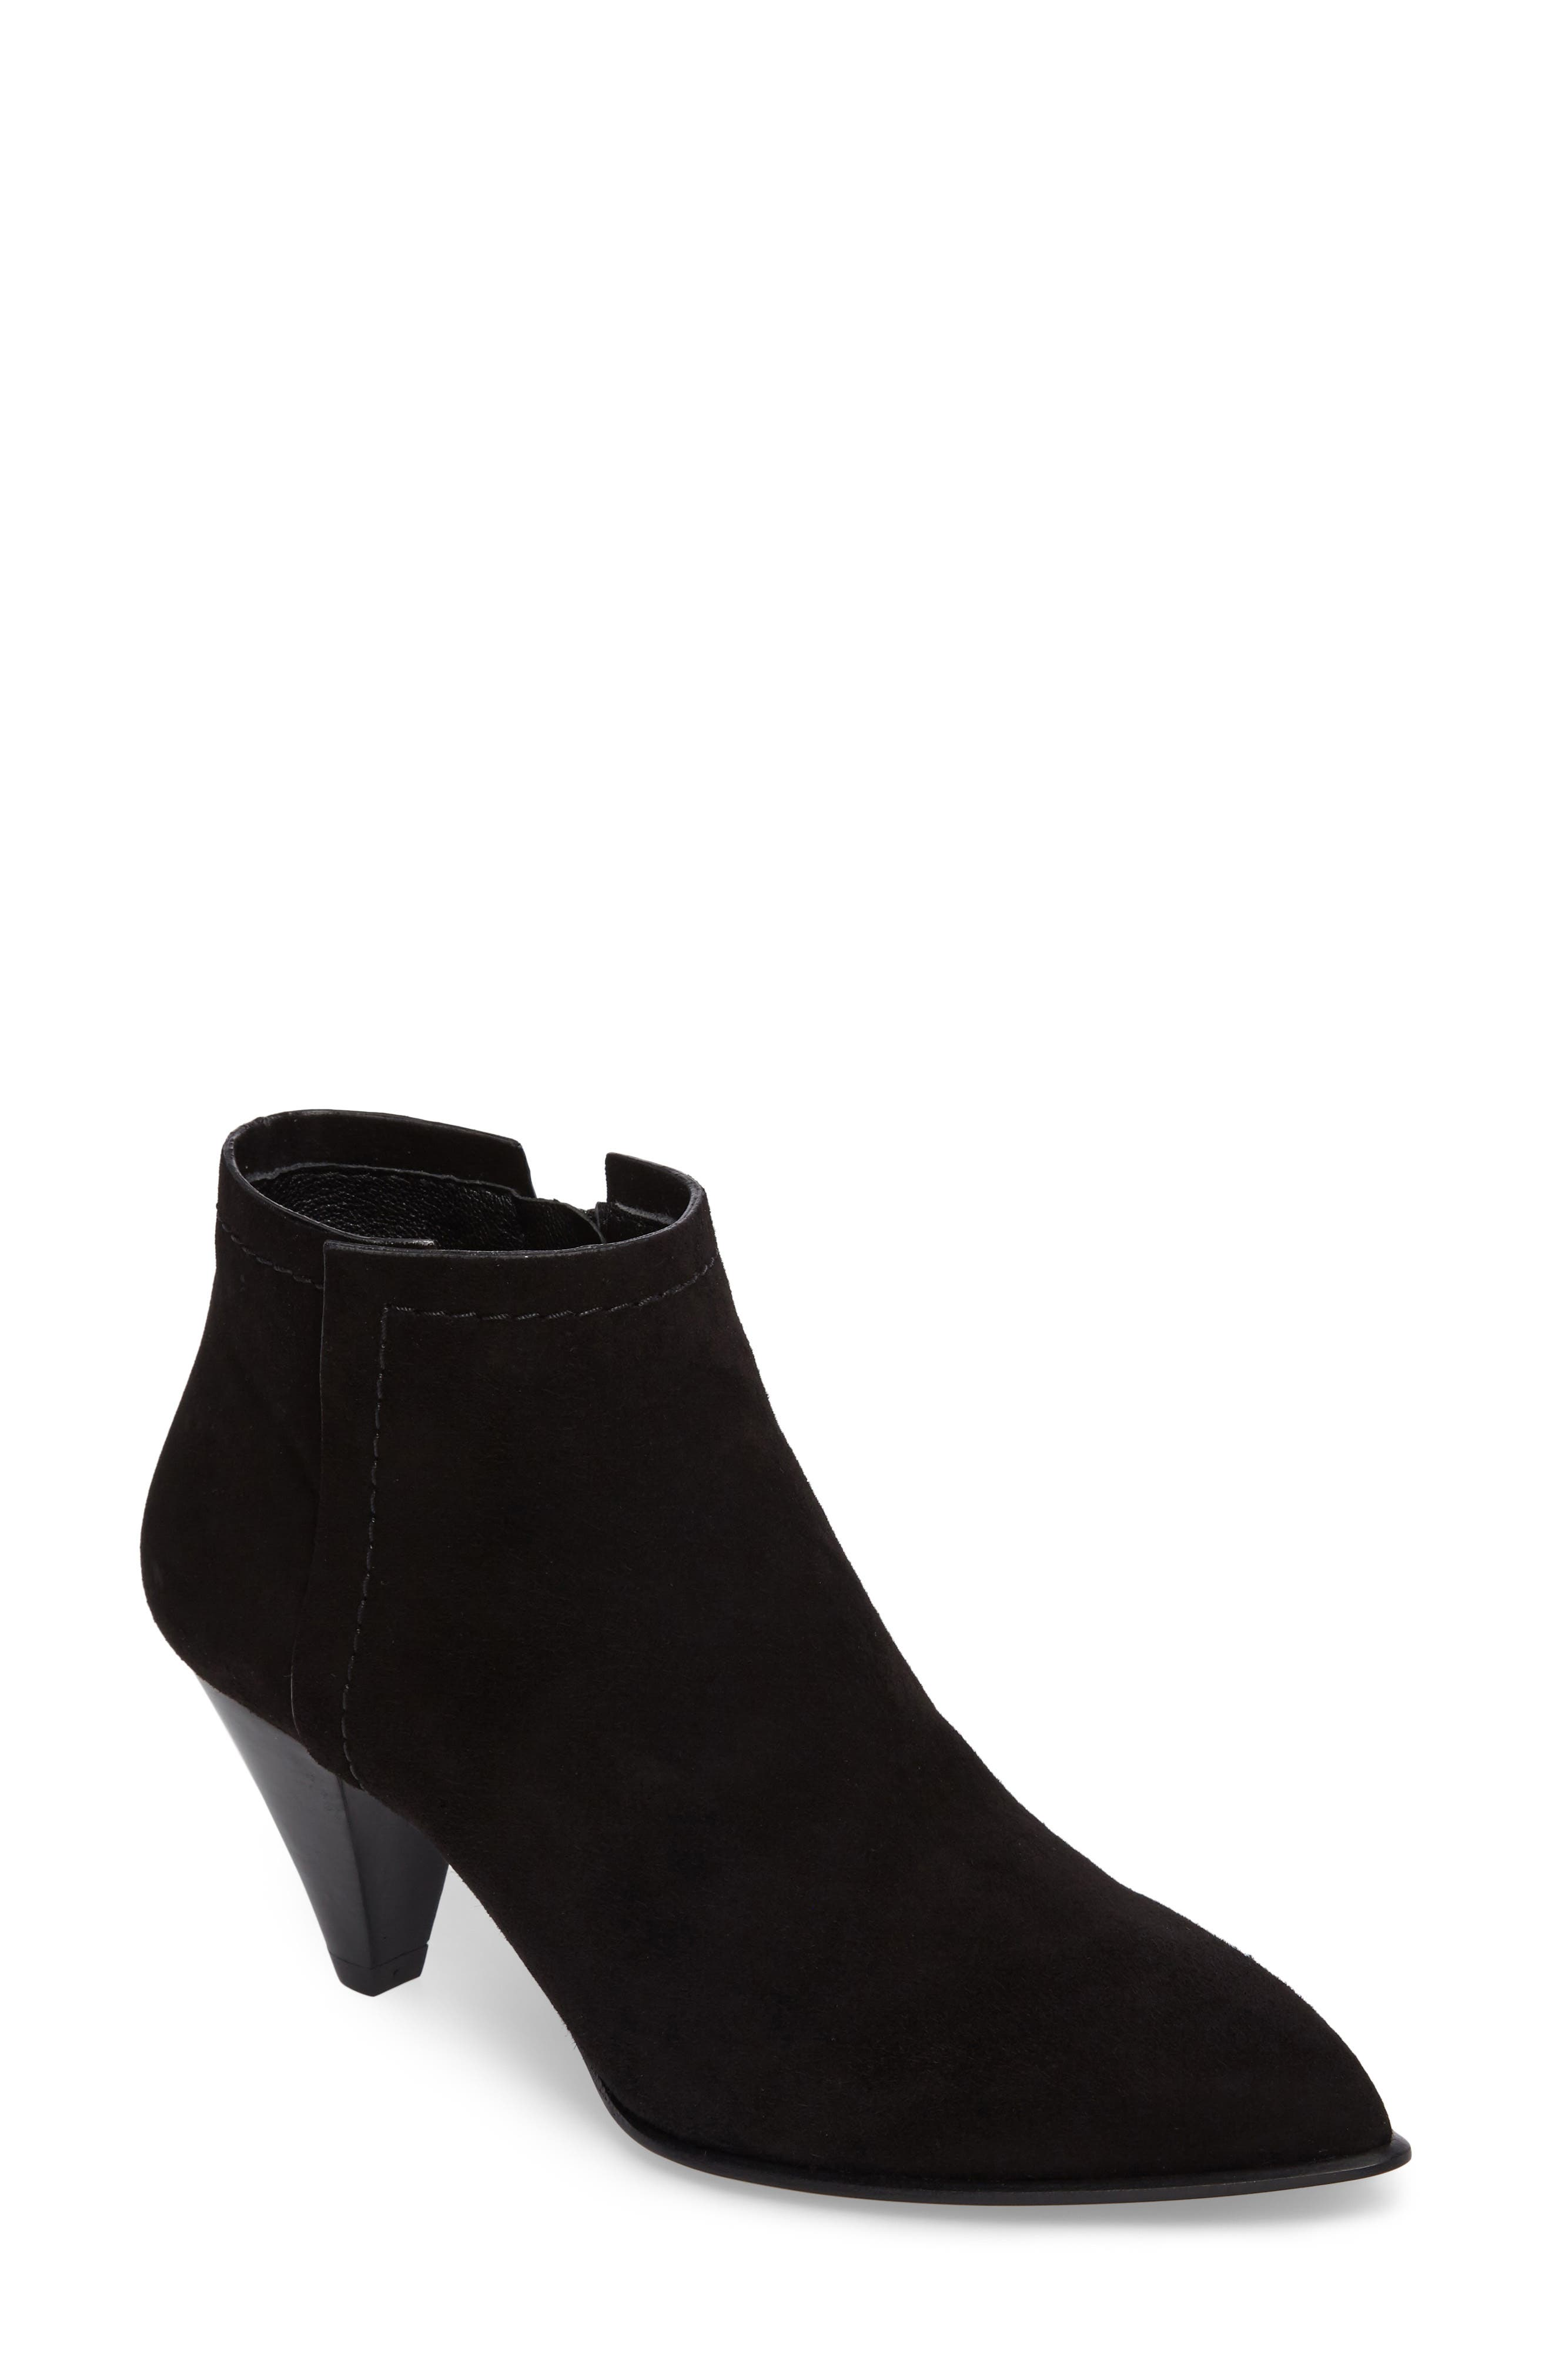 Alternate Image 1 Selected - Pedro Garcia Erminia Cone Heel Bootie (Women)